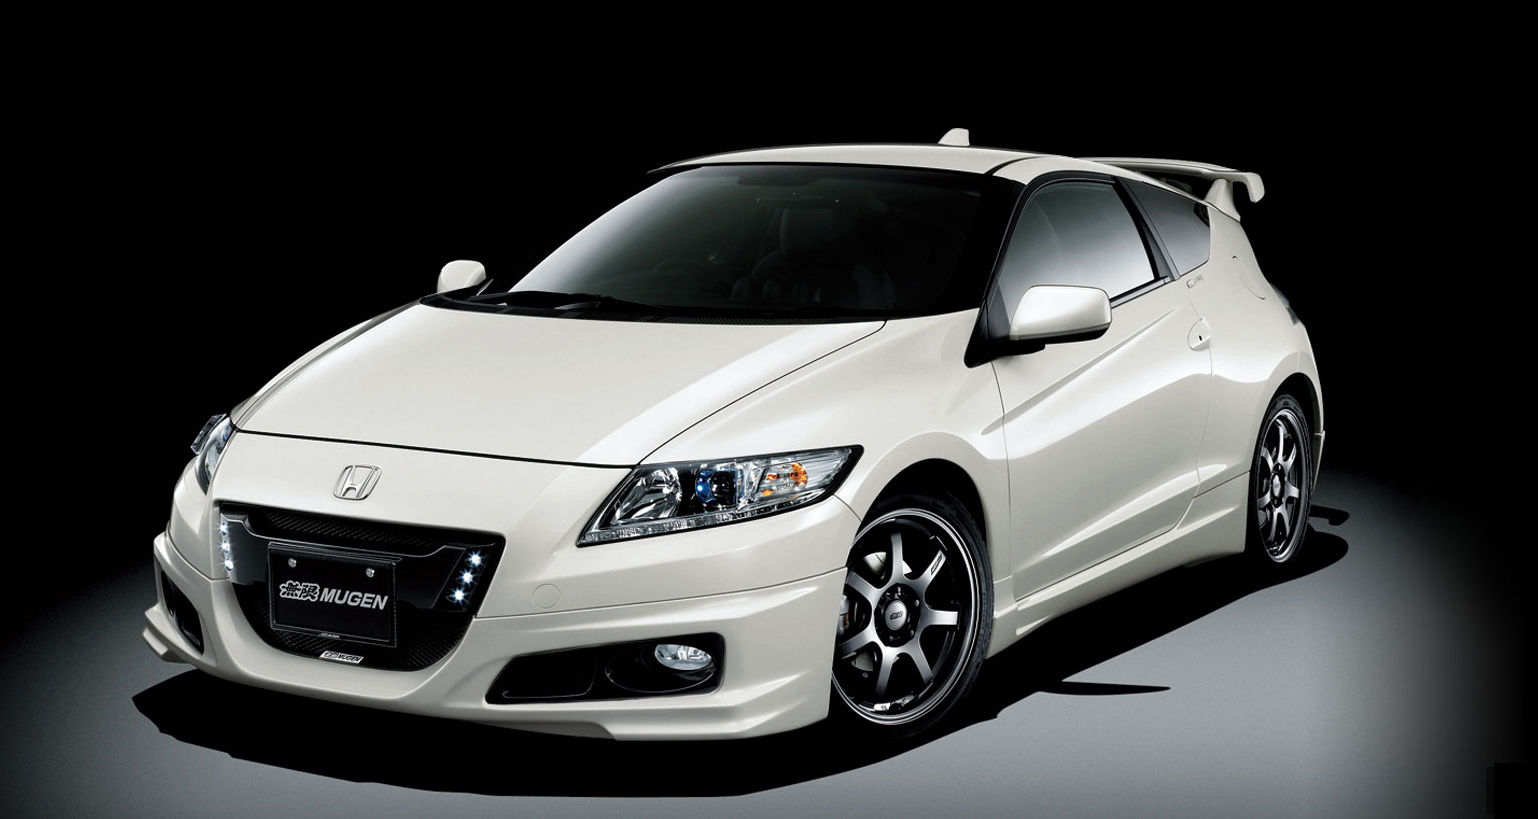 Good Morning Images Quotes Wallpapers For Whatsapp Top Honda Crz Hd Wallpaper My Site